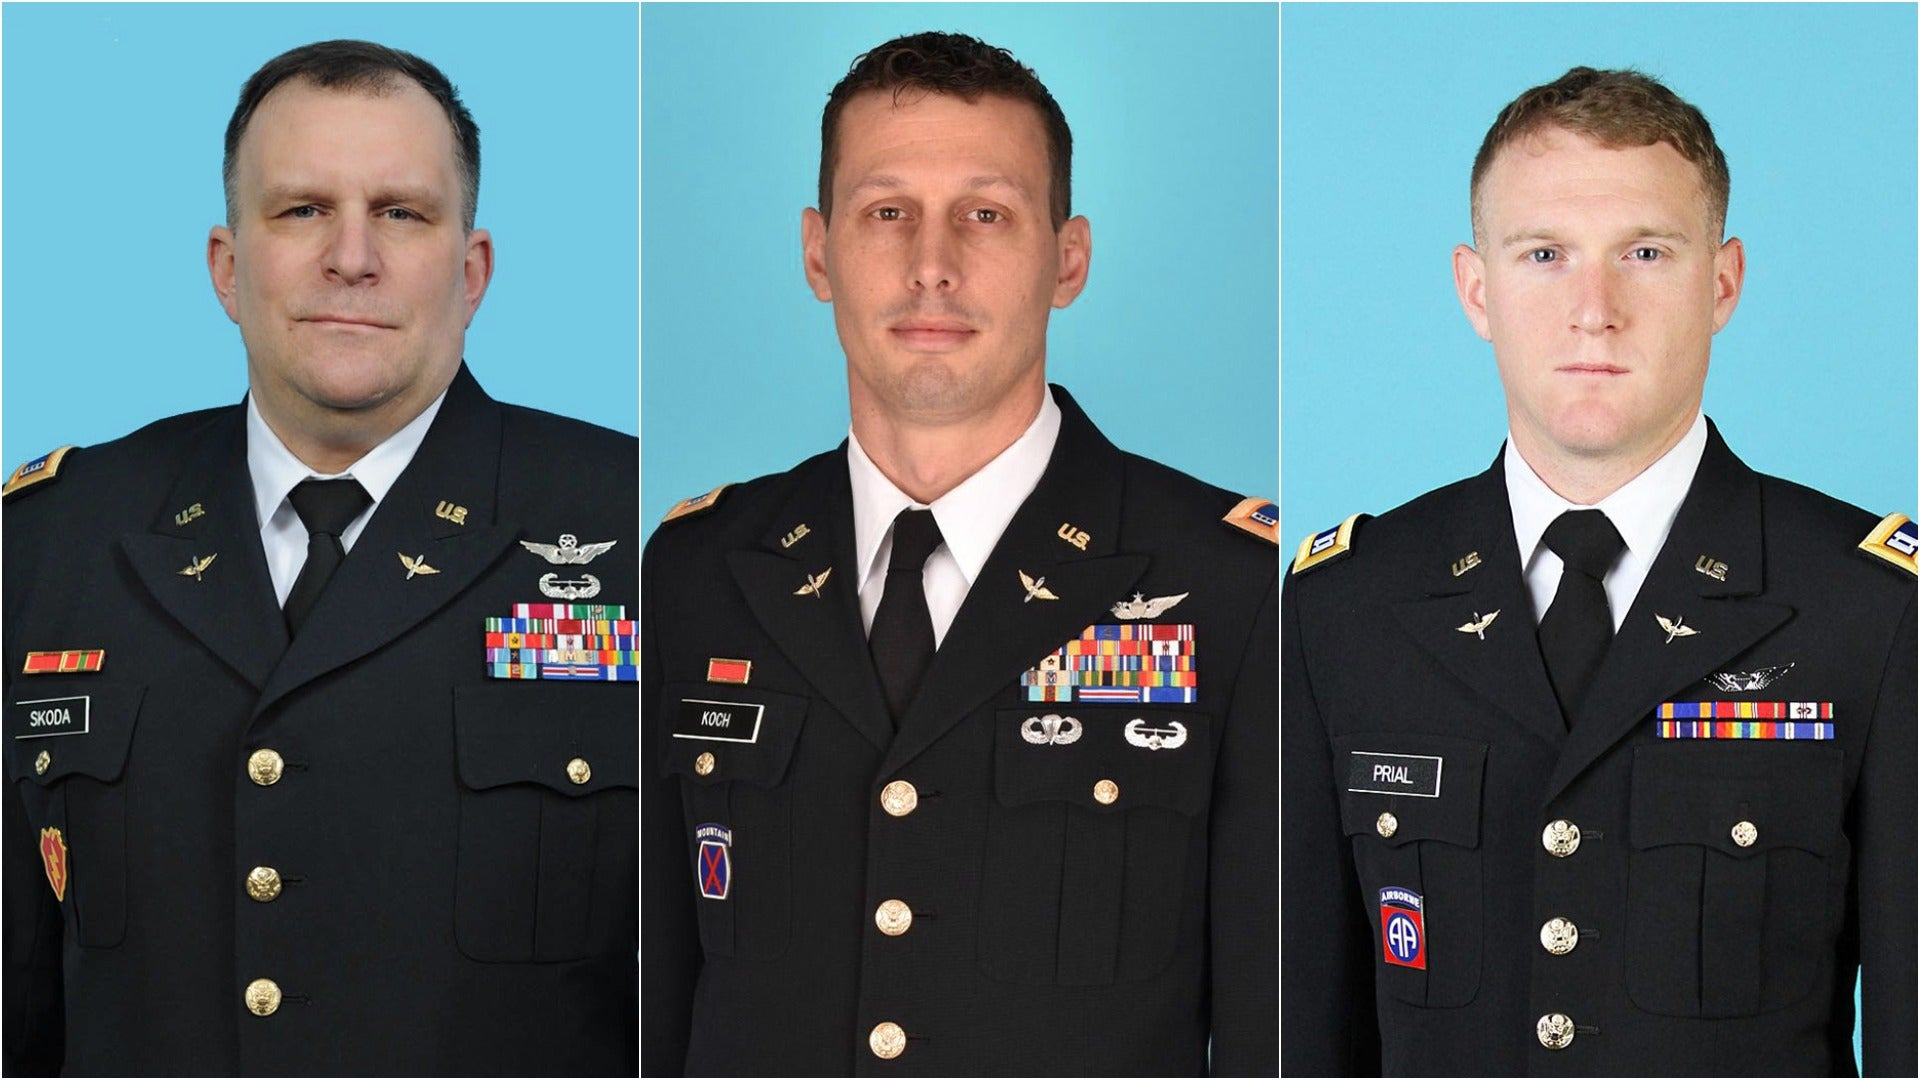 National Guard identifies 3 soldiers killed in helicopter crash in New York